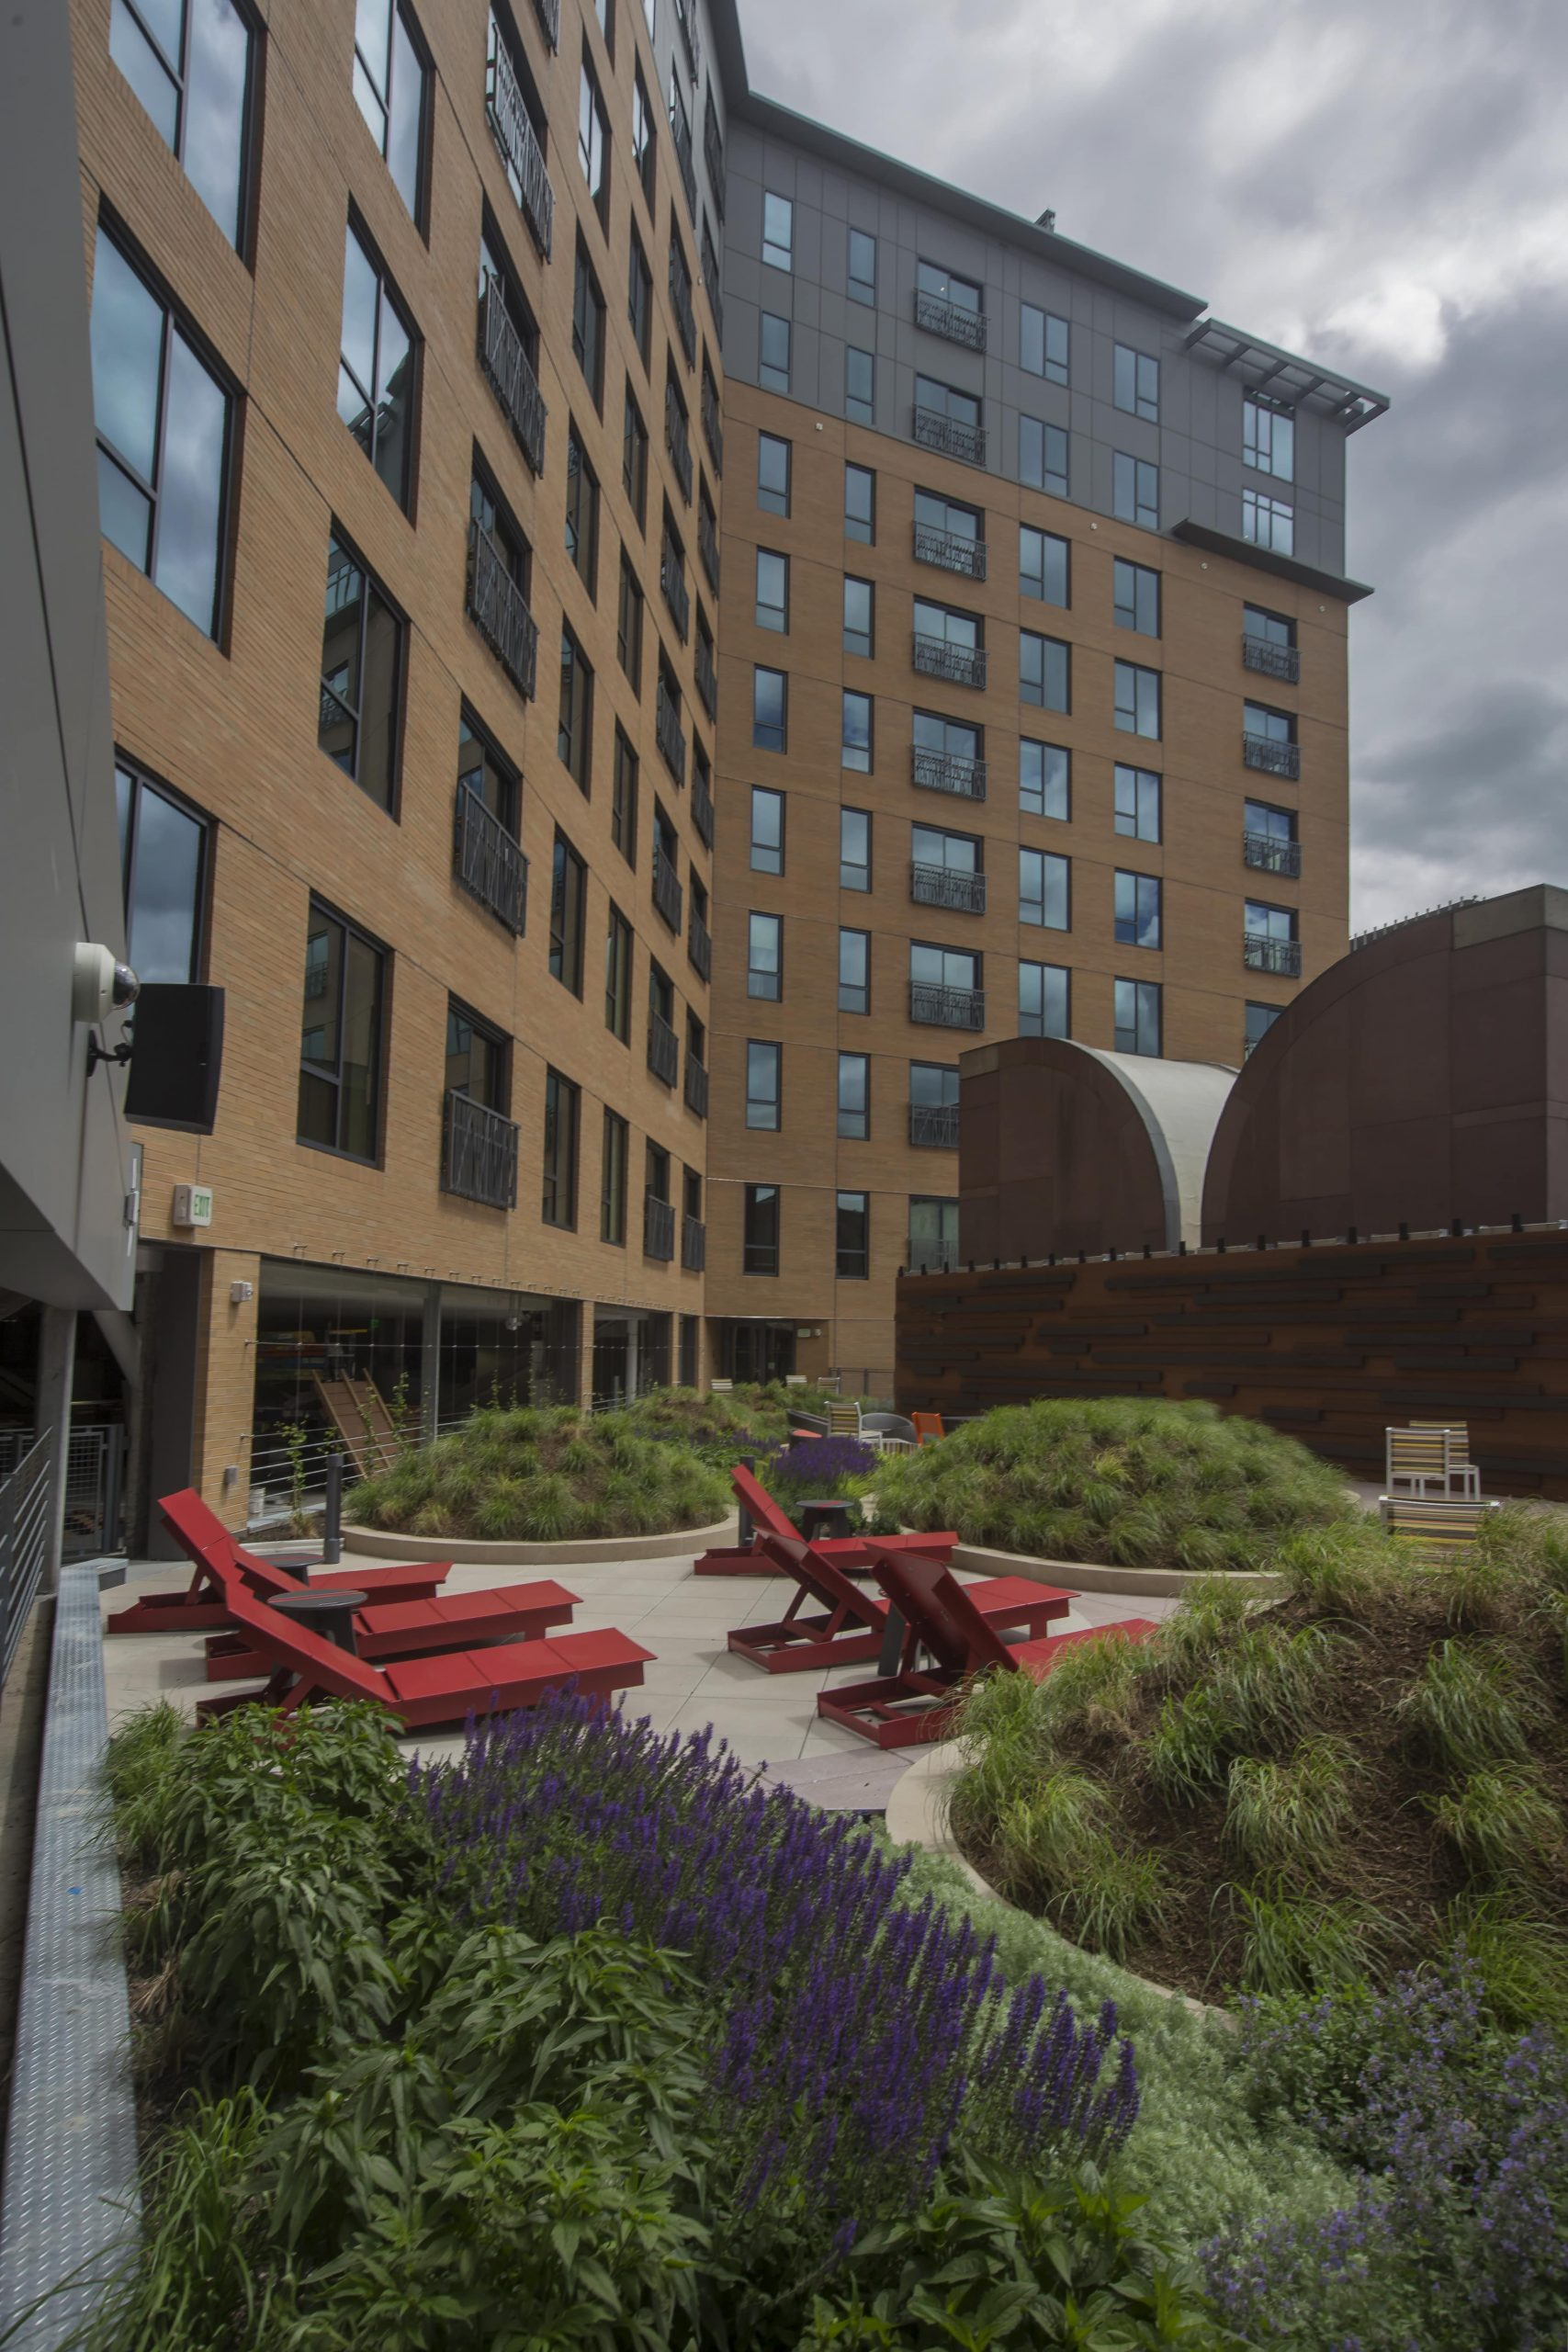 A garden and relaxation area created by Greenscape on Canal Street.